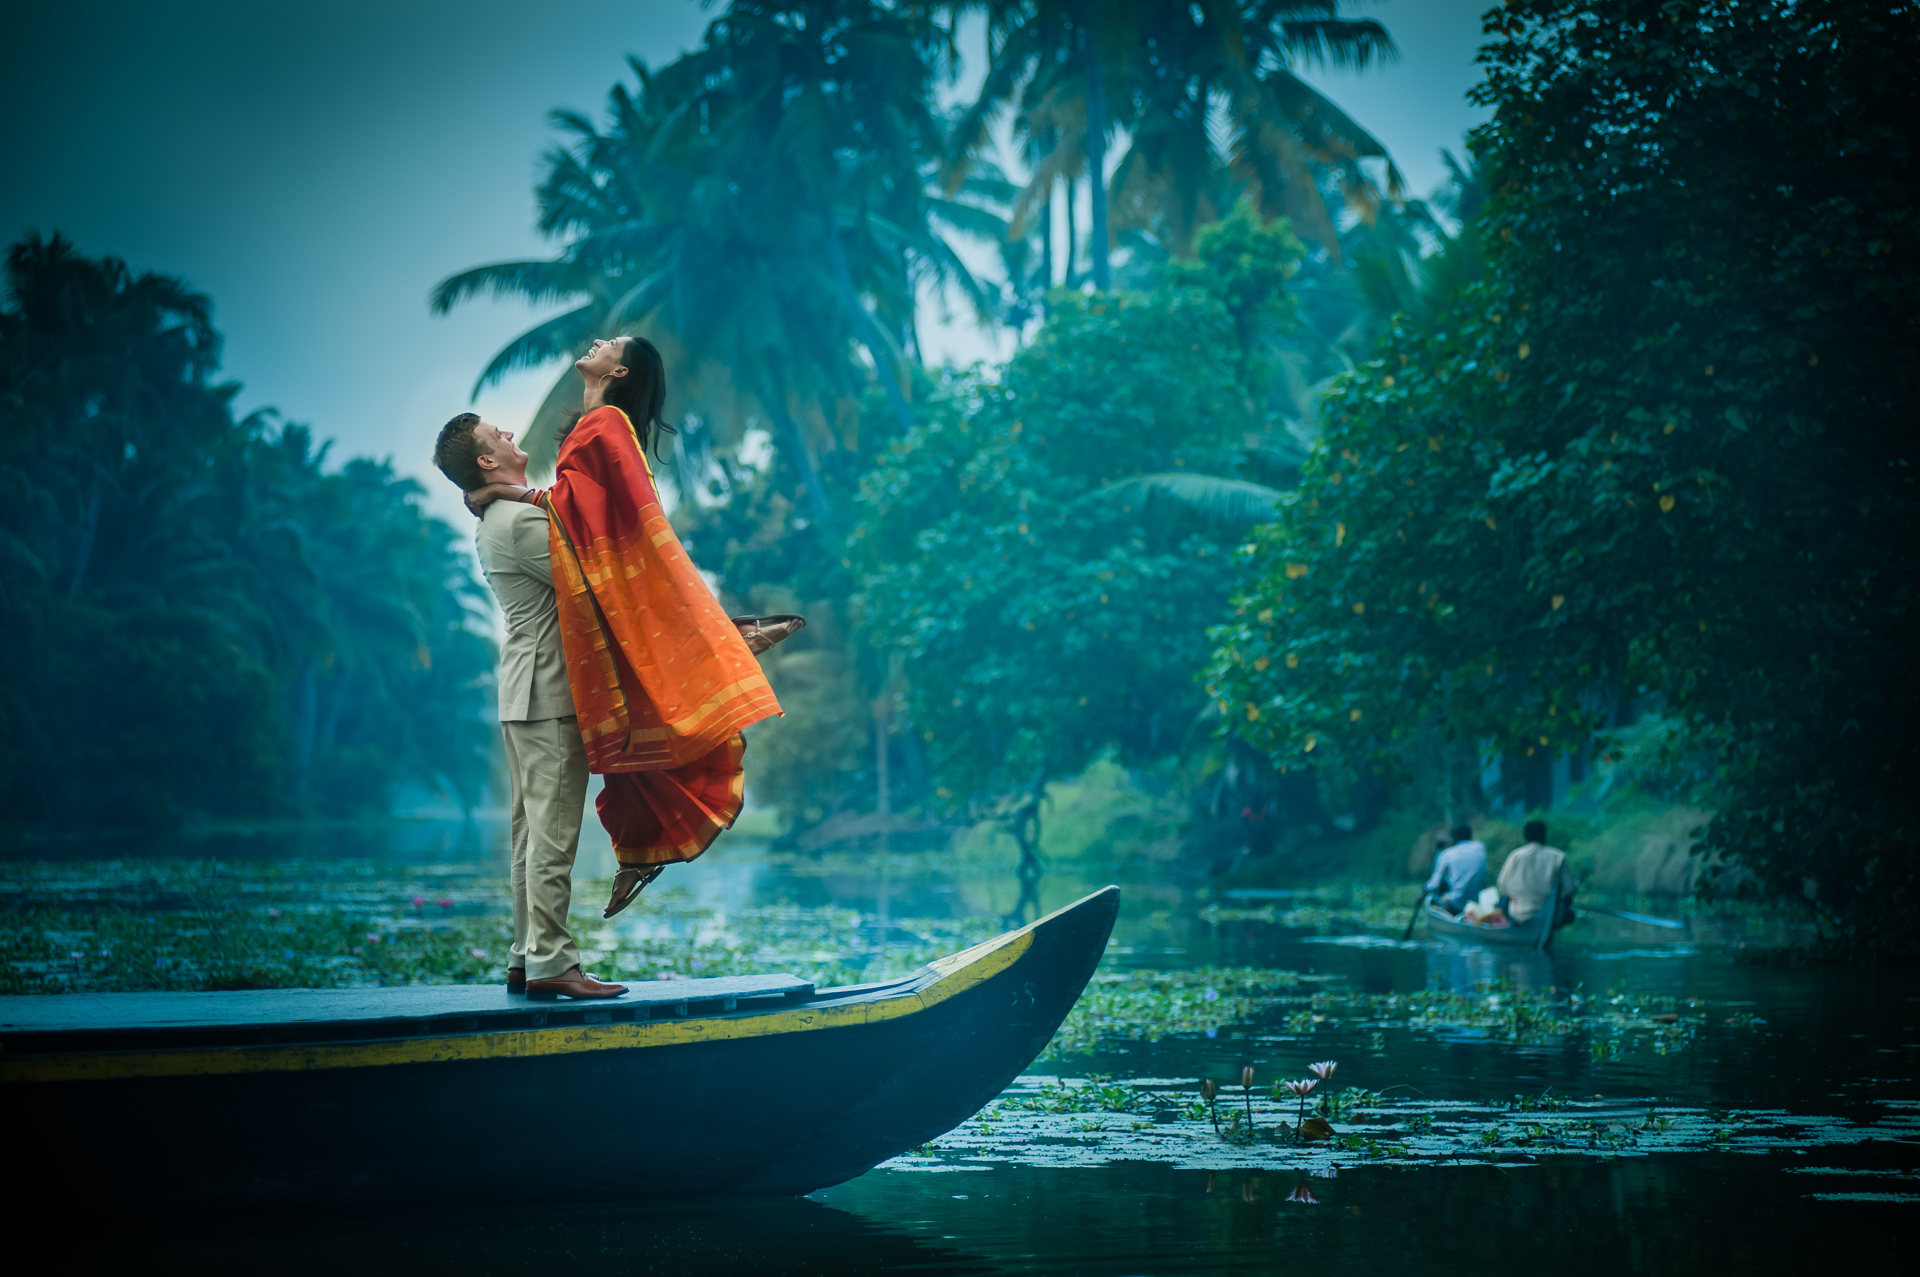 Estatic groom in East Indian attire lifting his joyful bride photographed by Sephi Bergerson